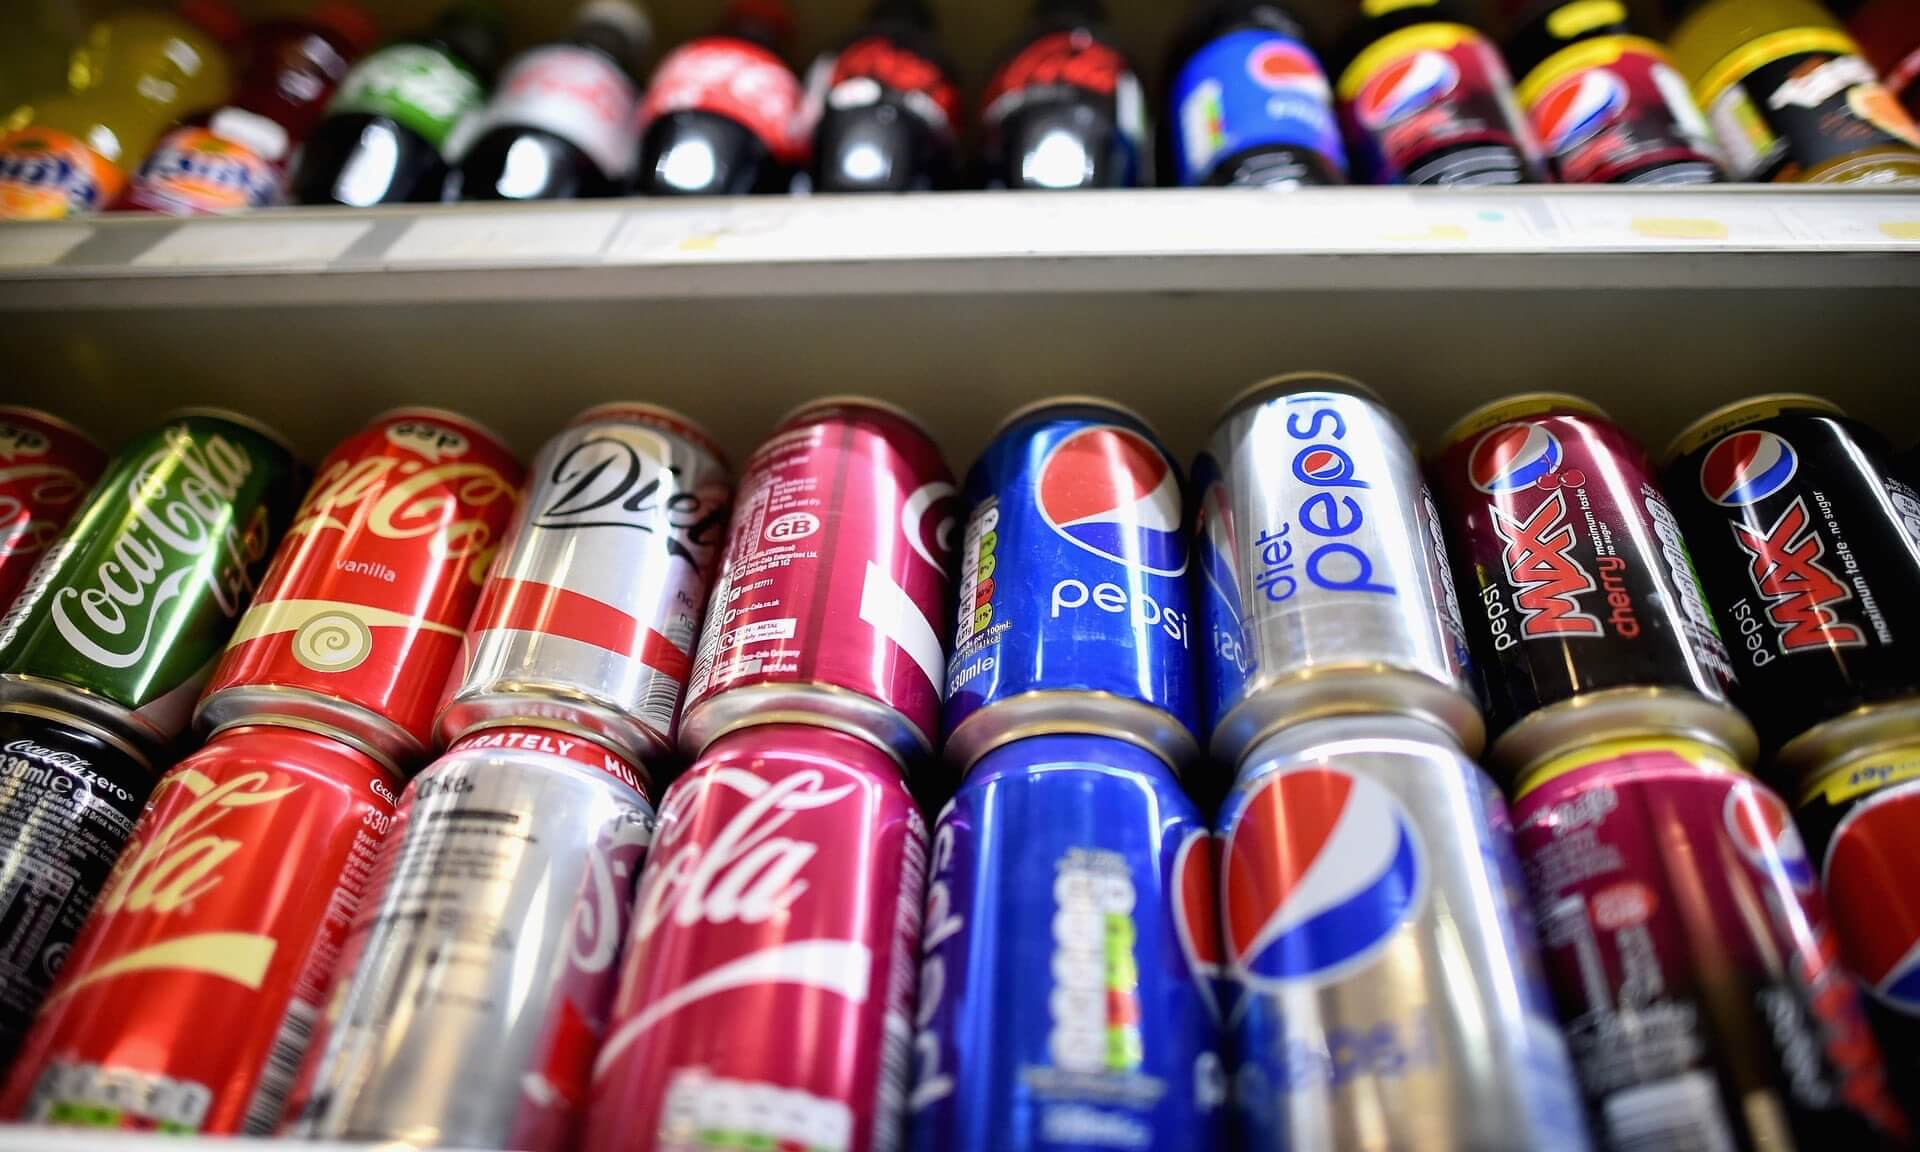 Frequent consumption of sugary drinks is the cause of premature death